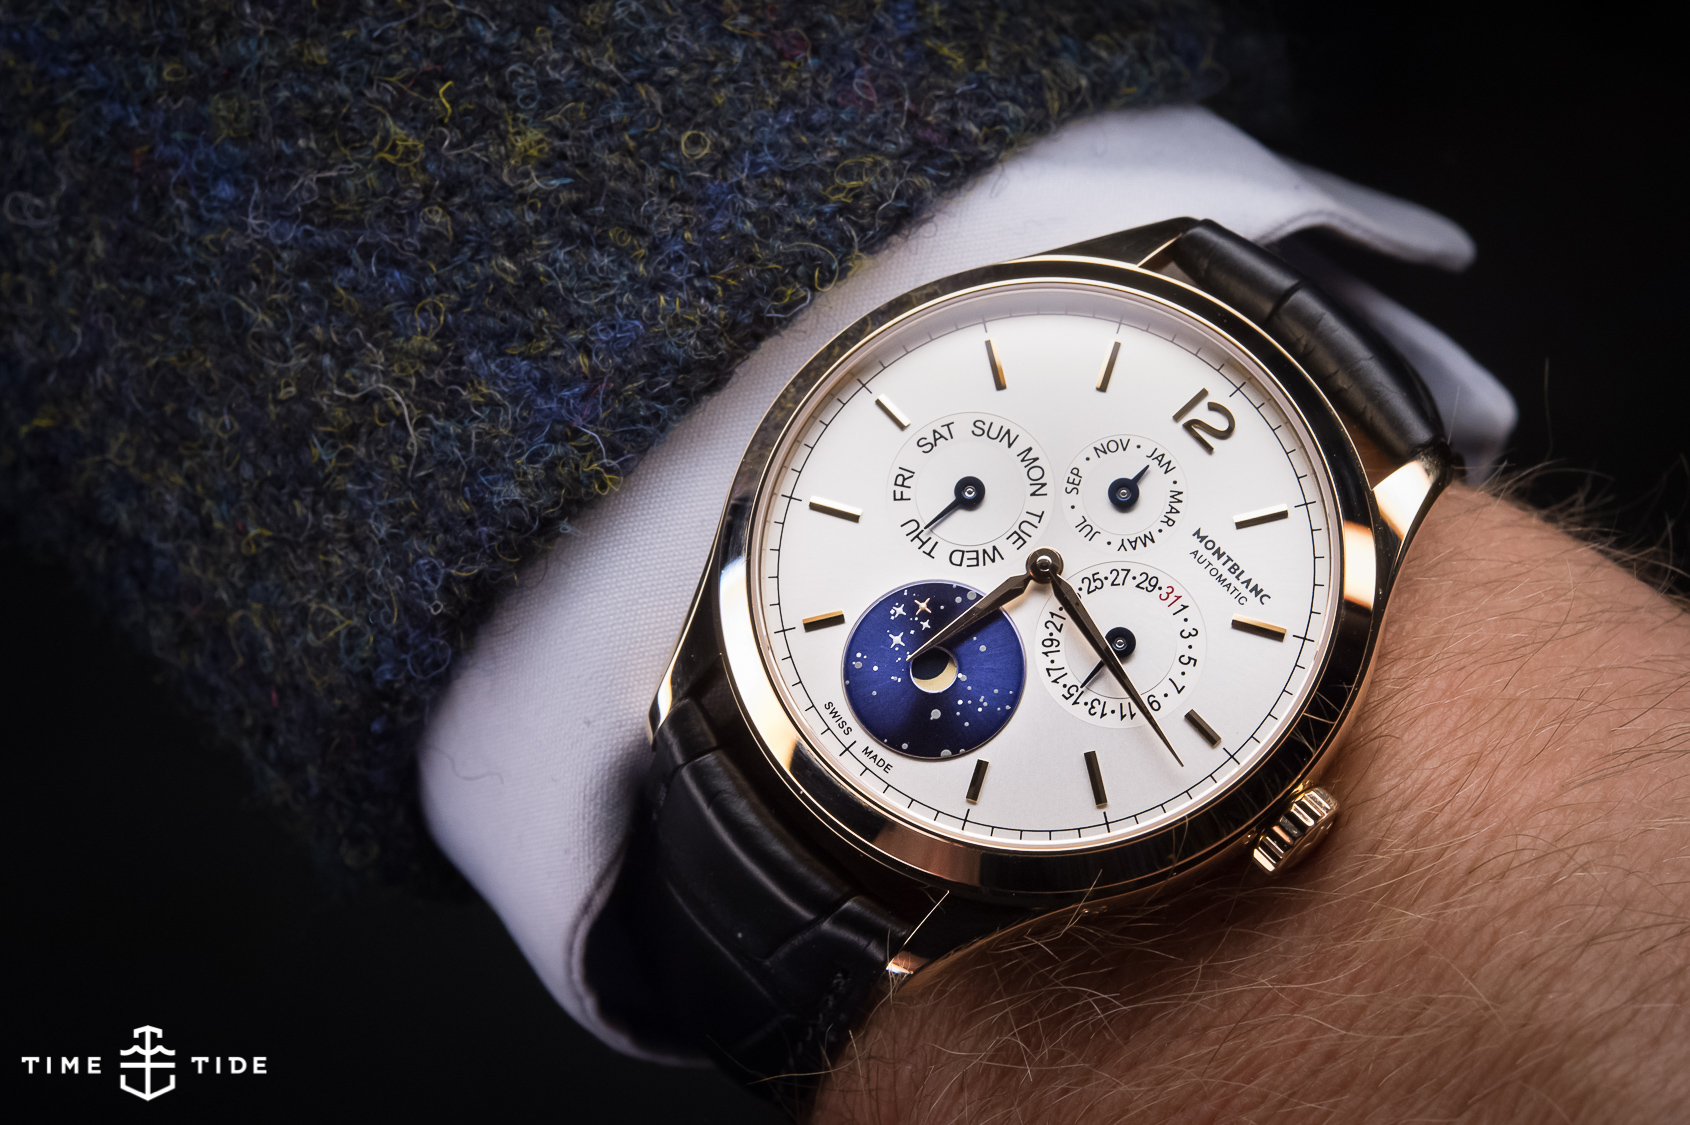 Montblanc heritage chronometrie annual calendar vasco da gama hands on review for Vasco watches